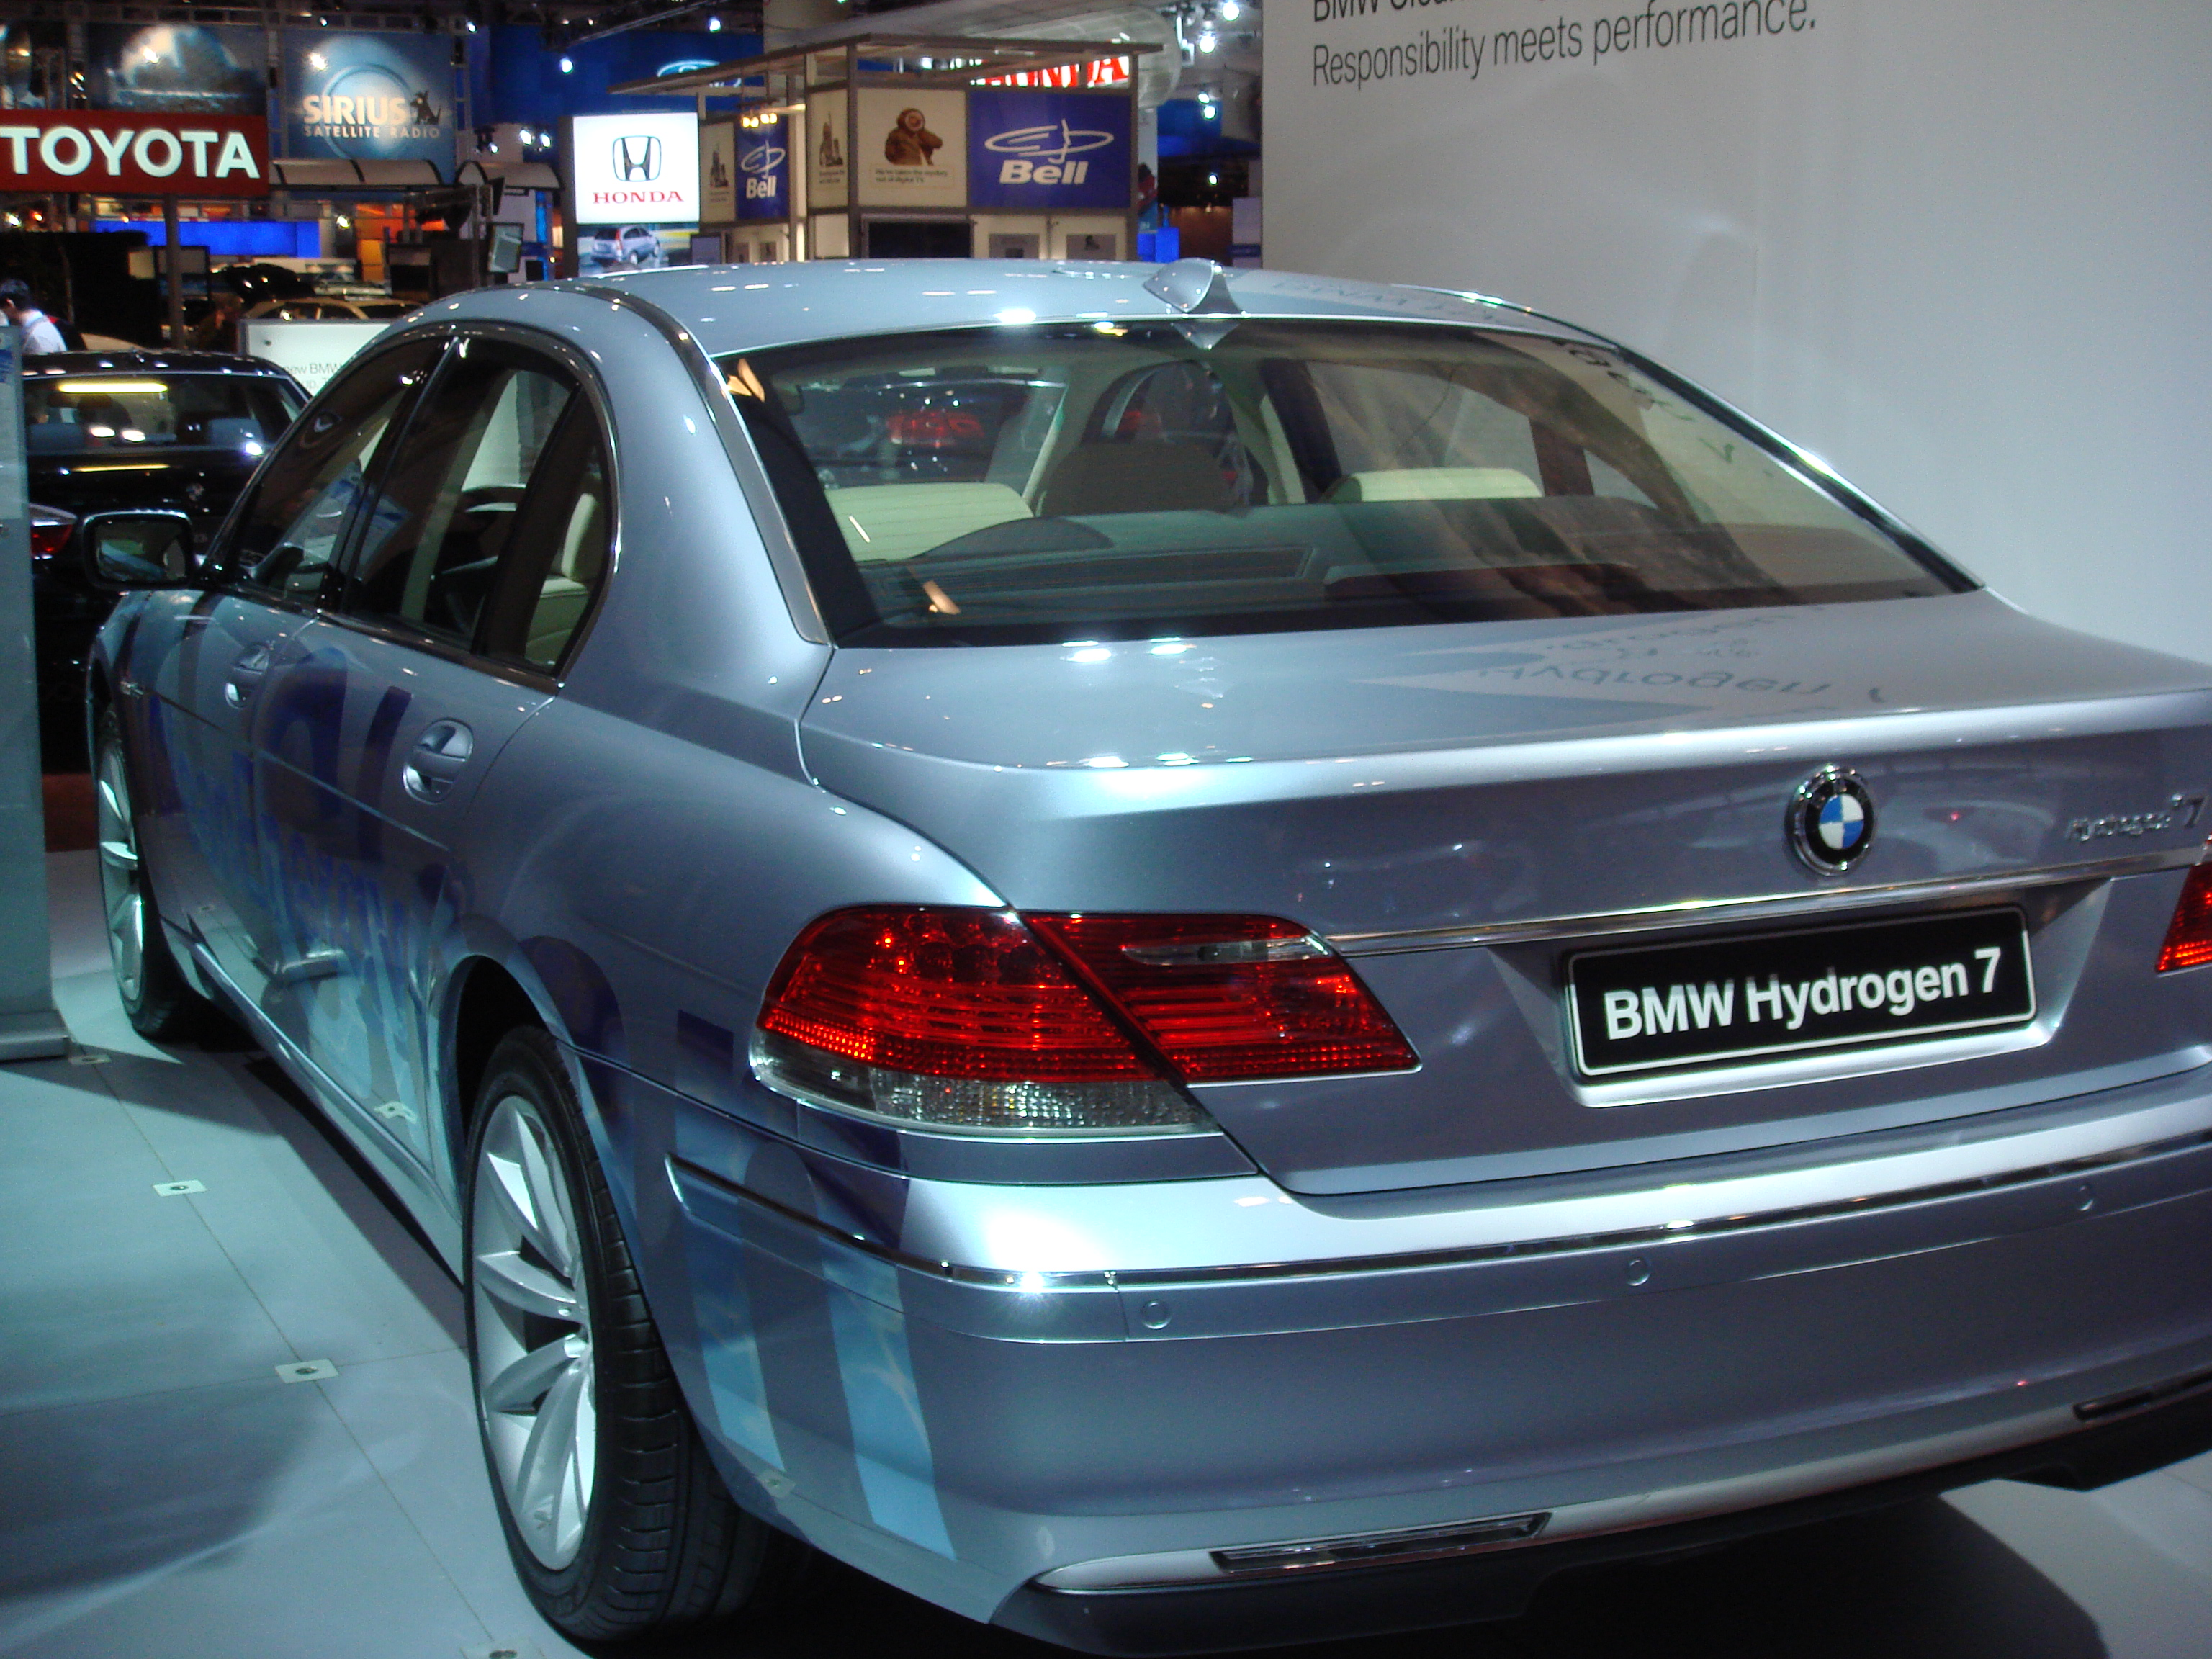 BMW Hydrogen 7 car - Color: Silver  // Description: amazing